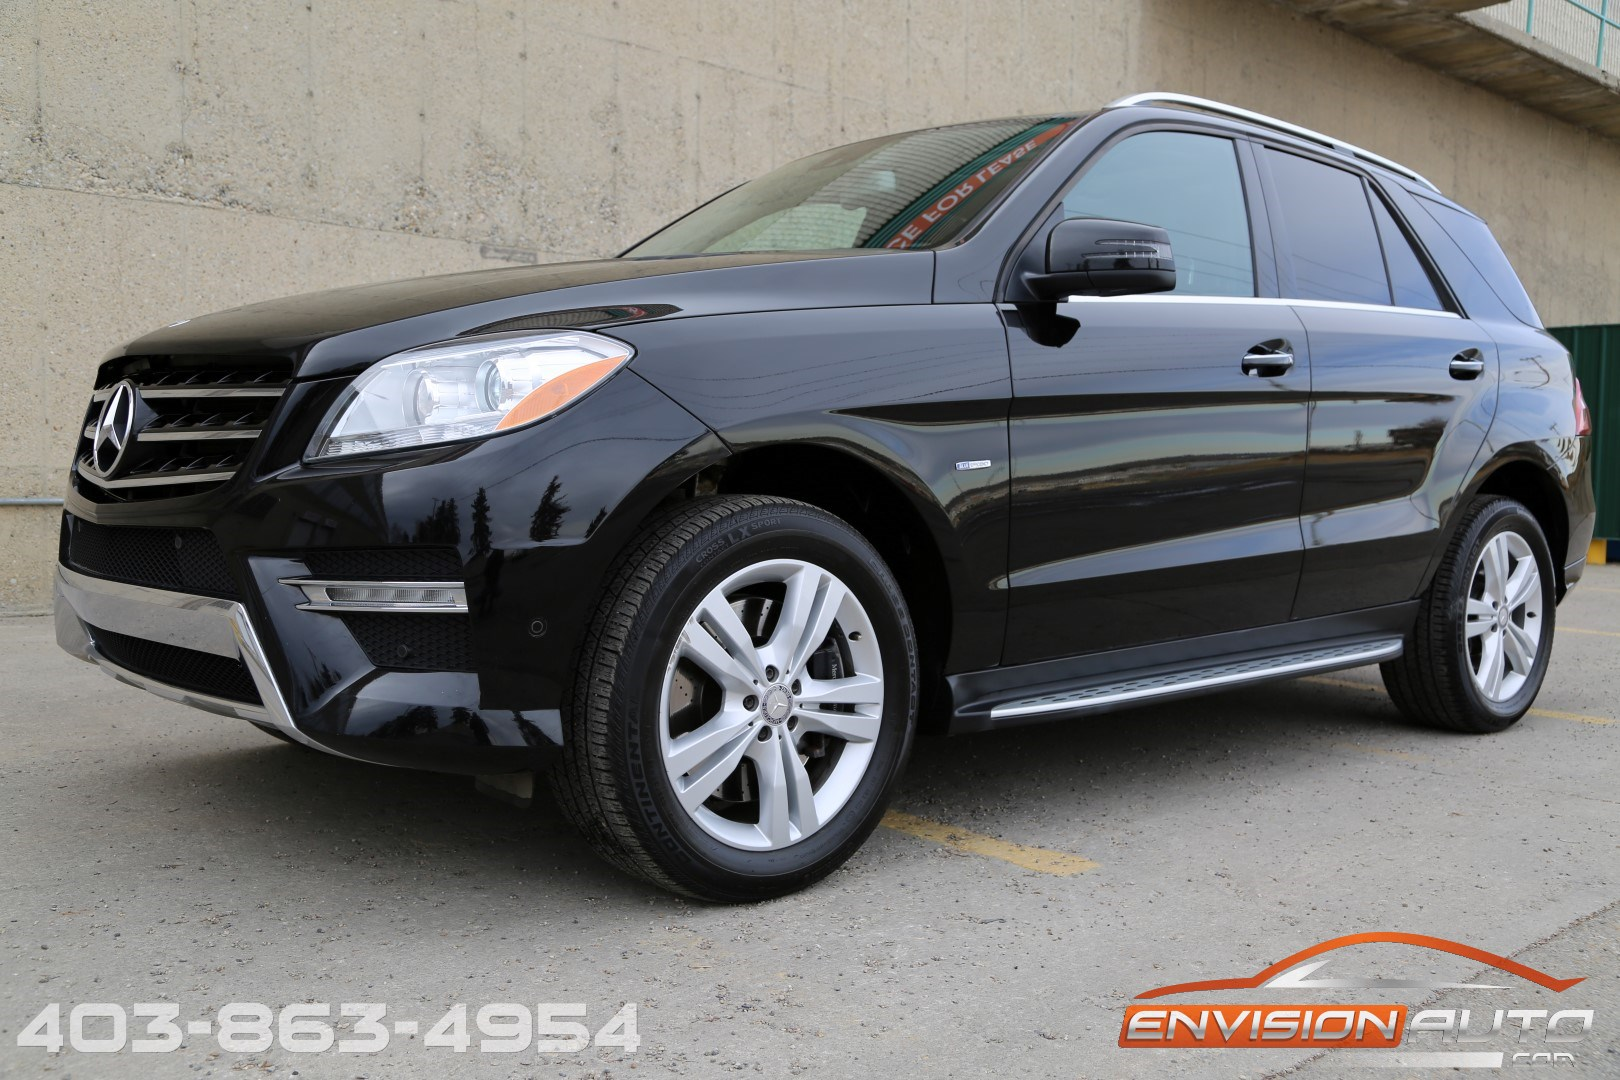 2012 mercedes benz ml350 4matic envision auto for 2012 mercedes benz ml350